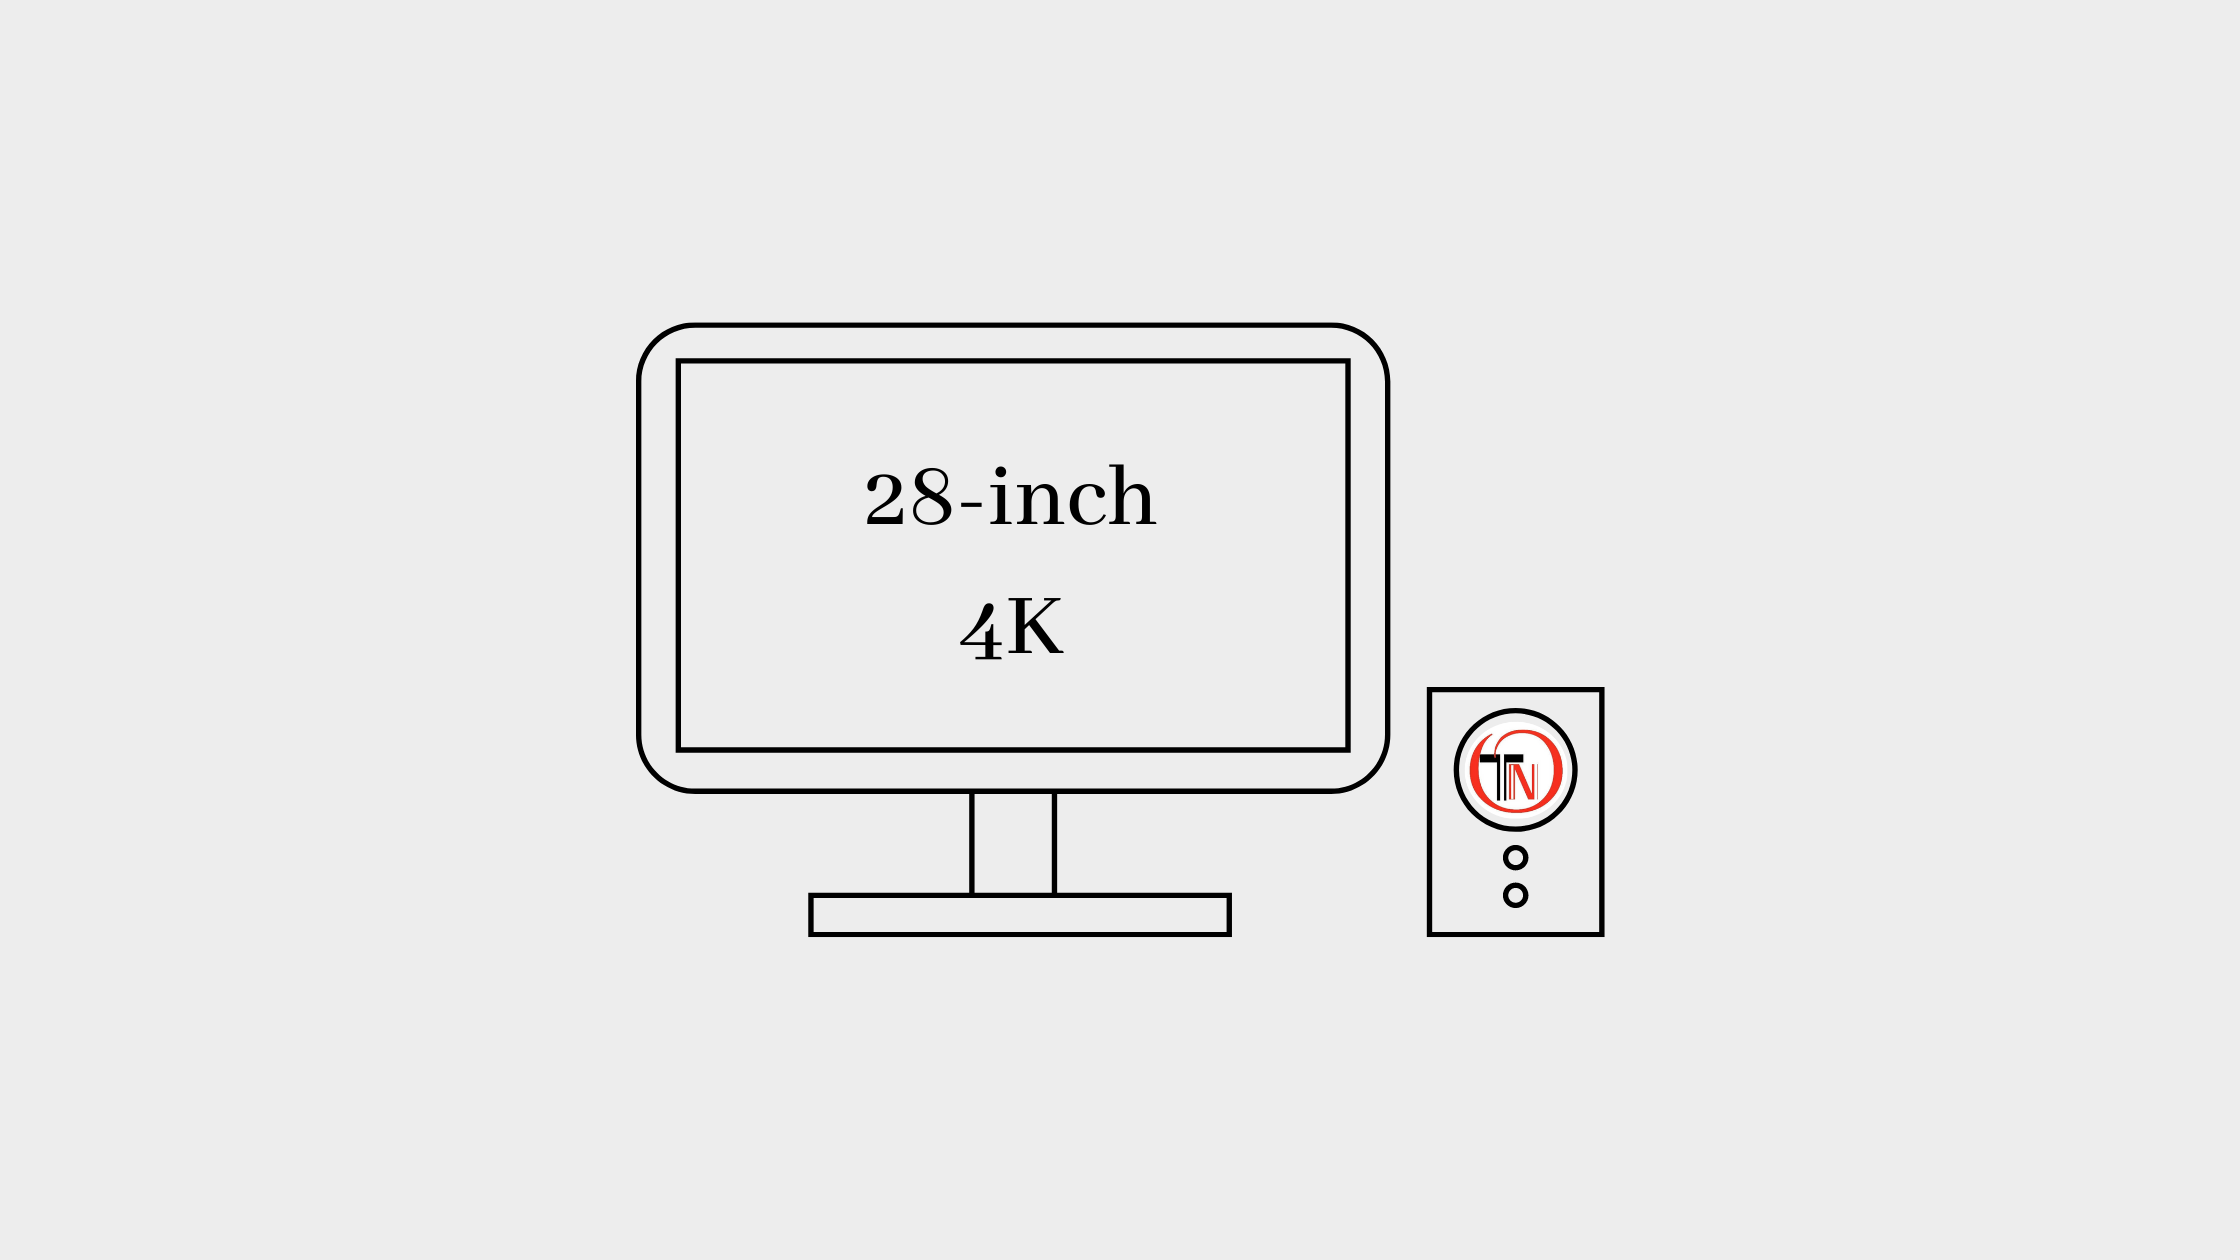 Best 28-inch 4k Gaming Monitor